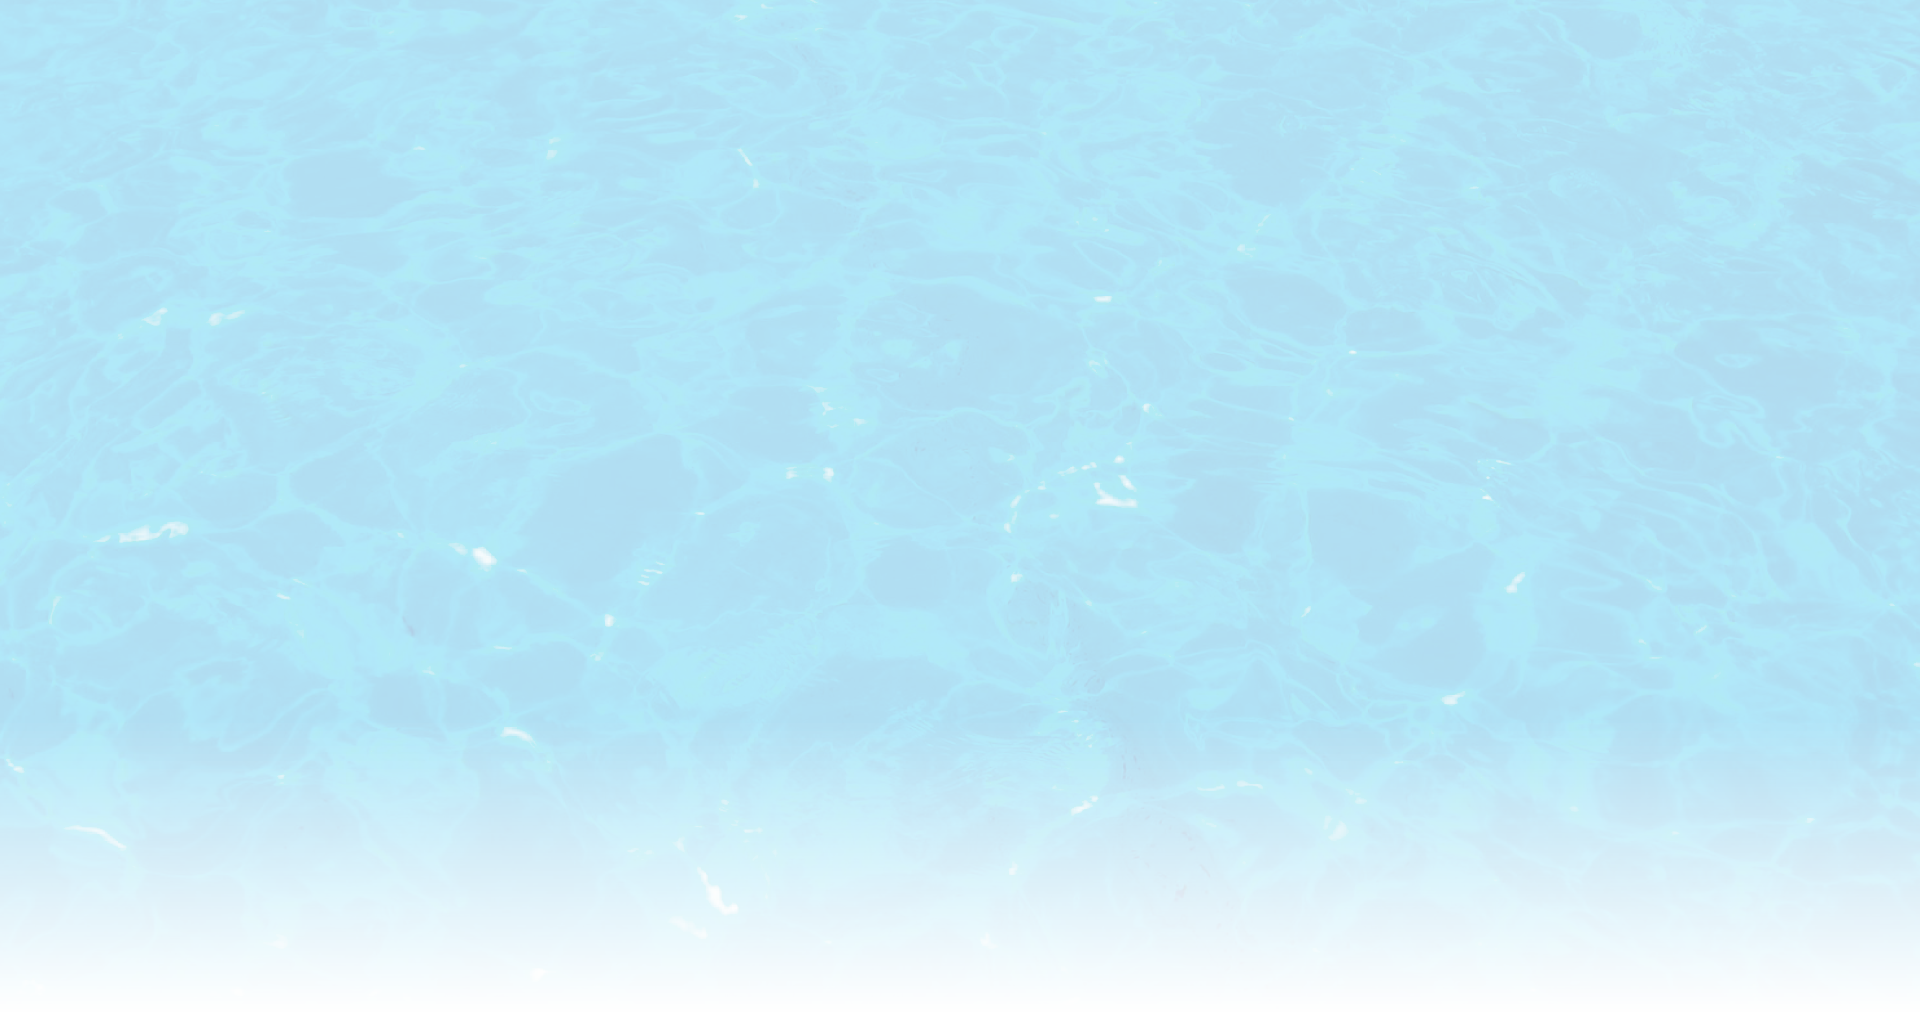 pool of water png